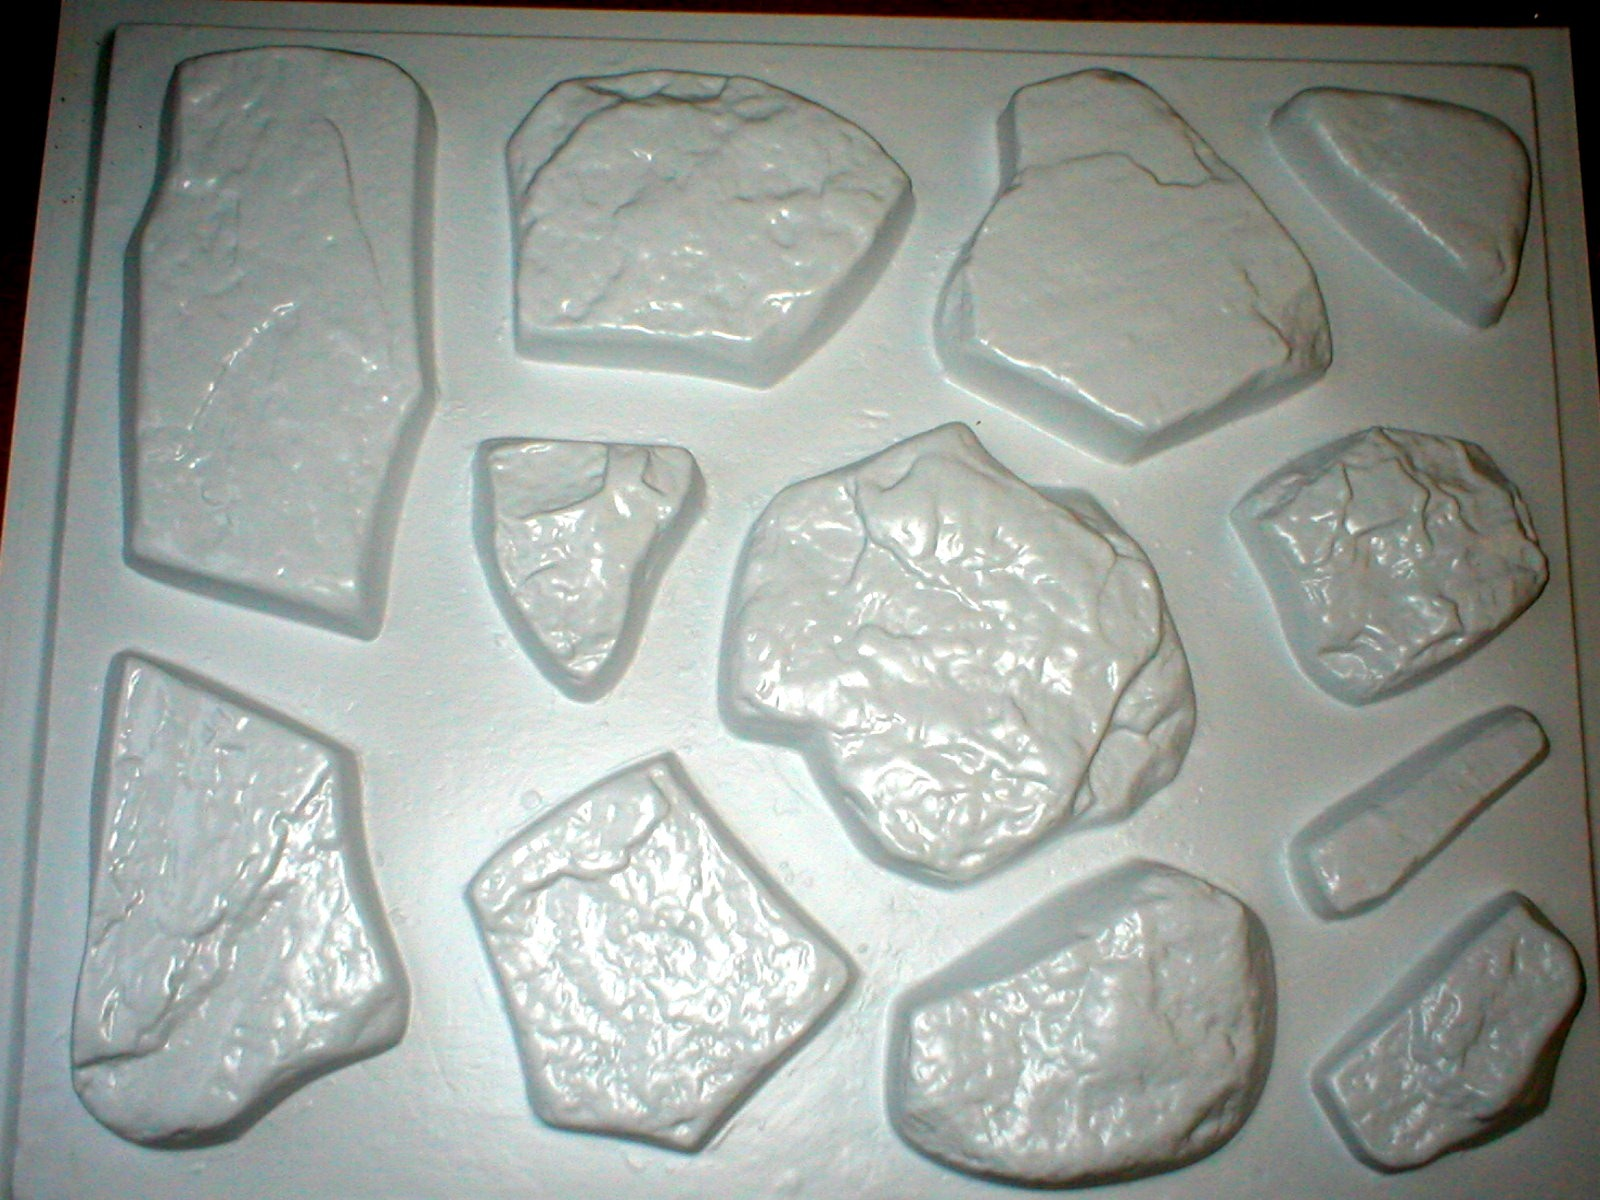 50 MOLD FIELDSTONE SET MAKES 50 UNIQUE CONCRETE STONE ROCKS PER POUR FOR PENNIES